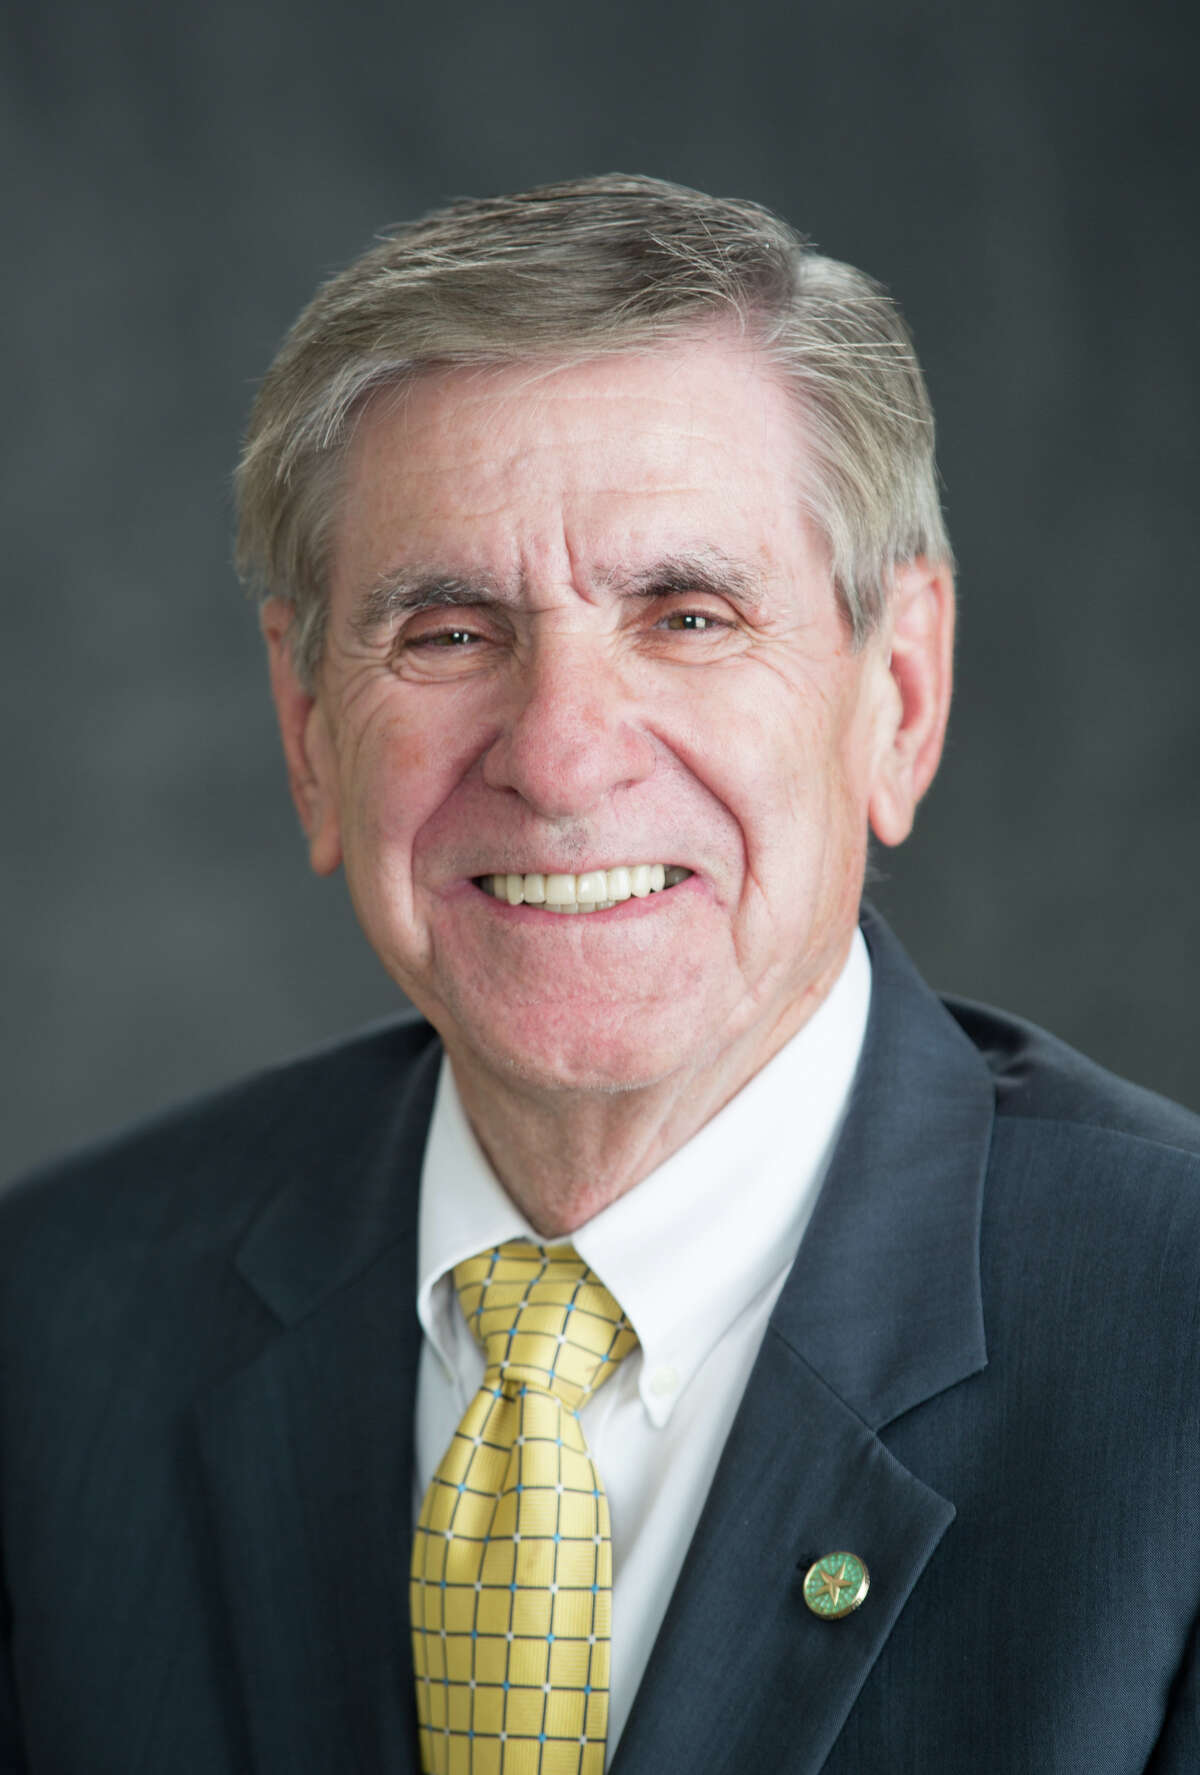 Phil Stephenson is seeking re-election to the Texas House of Representatives, District 85. (Courtesy photo)